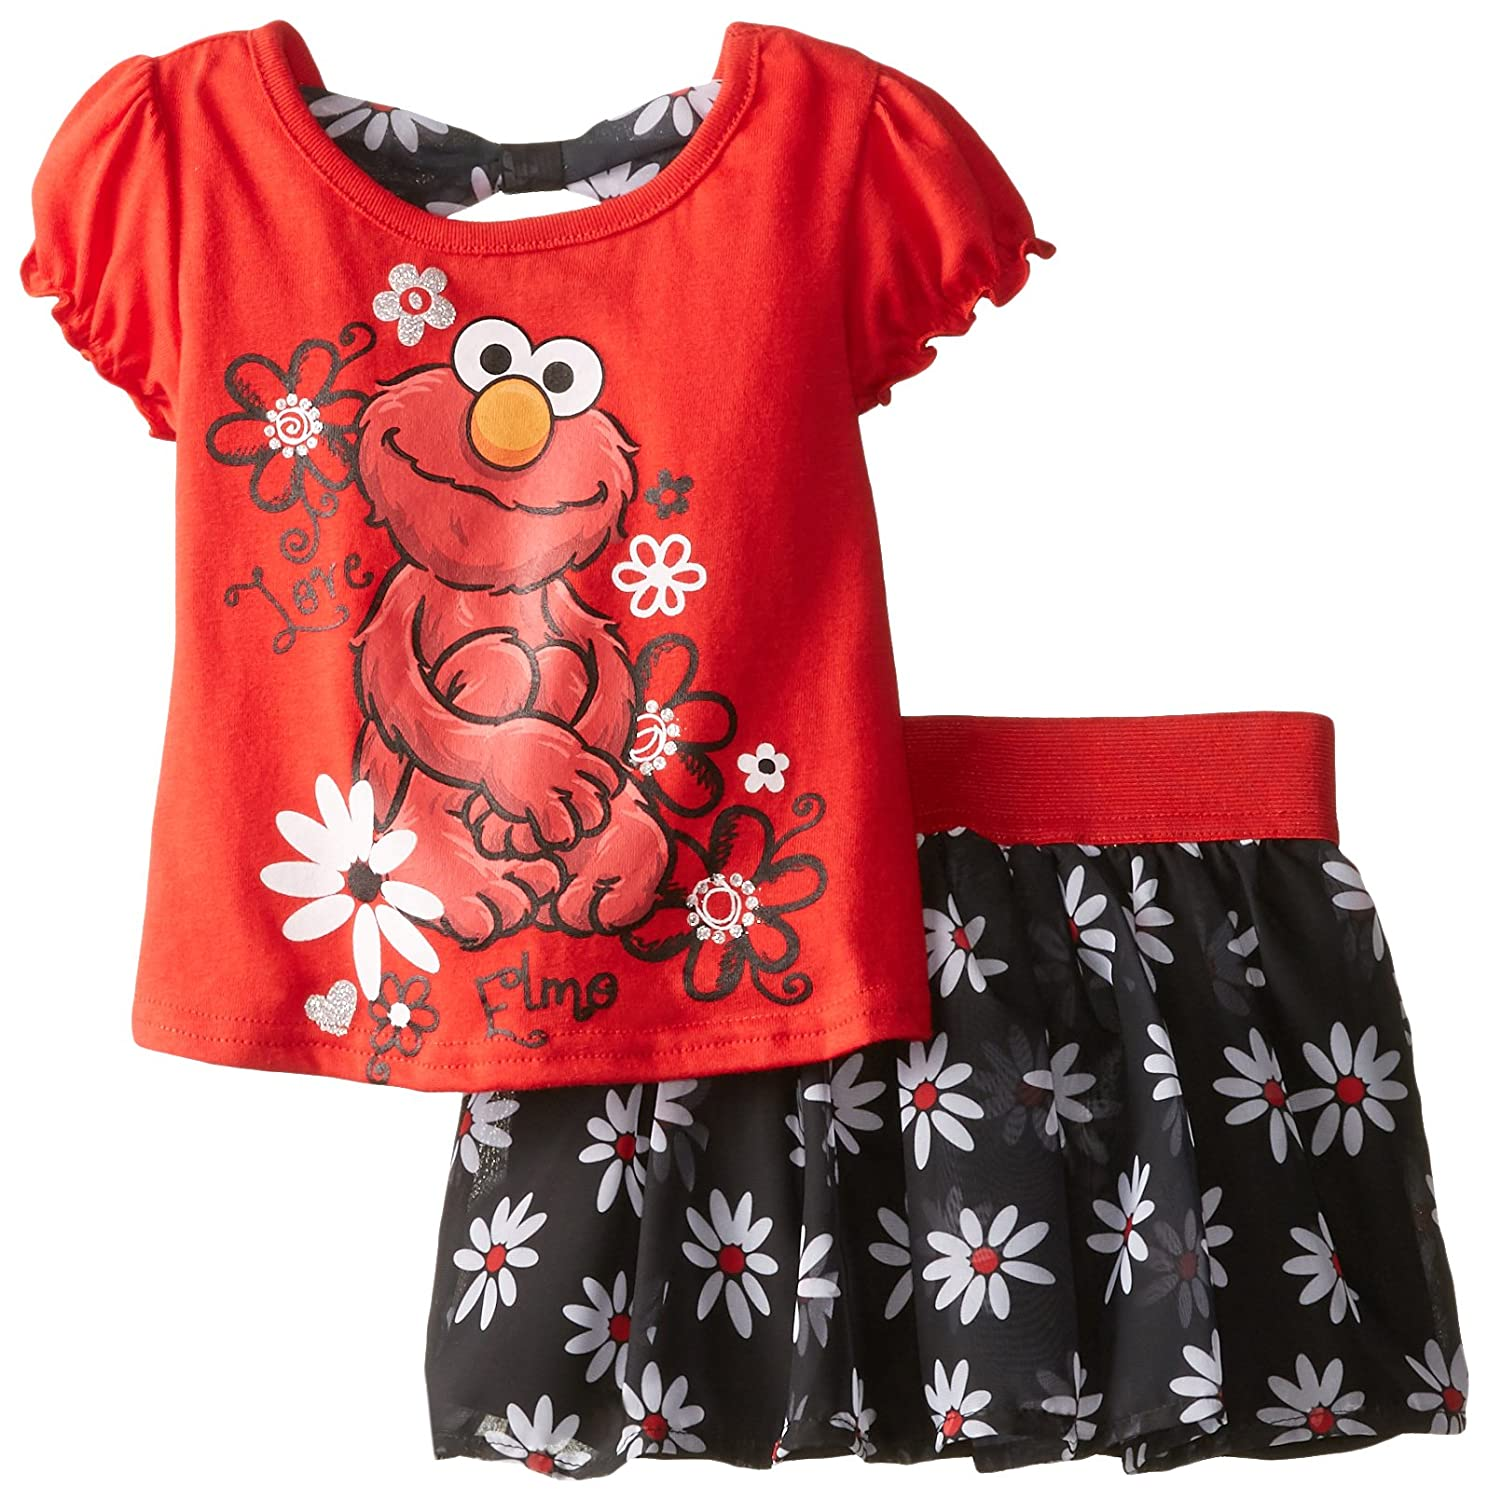 Elmo T Shirts For Toddlers Carrerasconfuturo Com